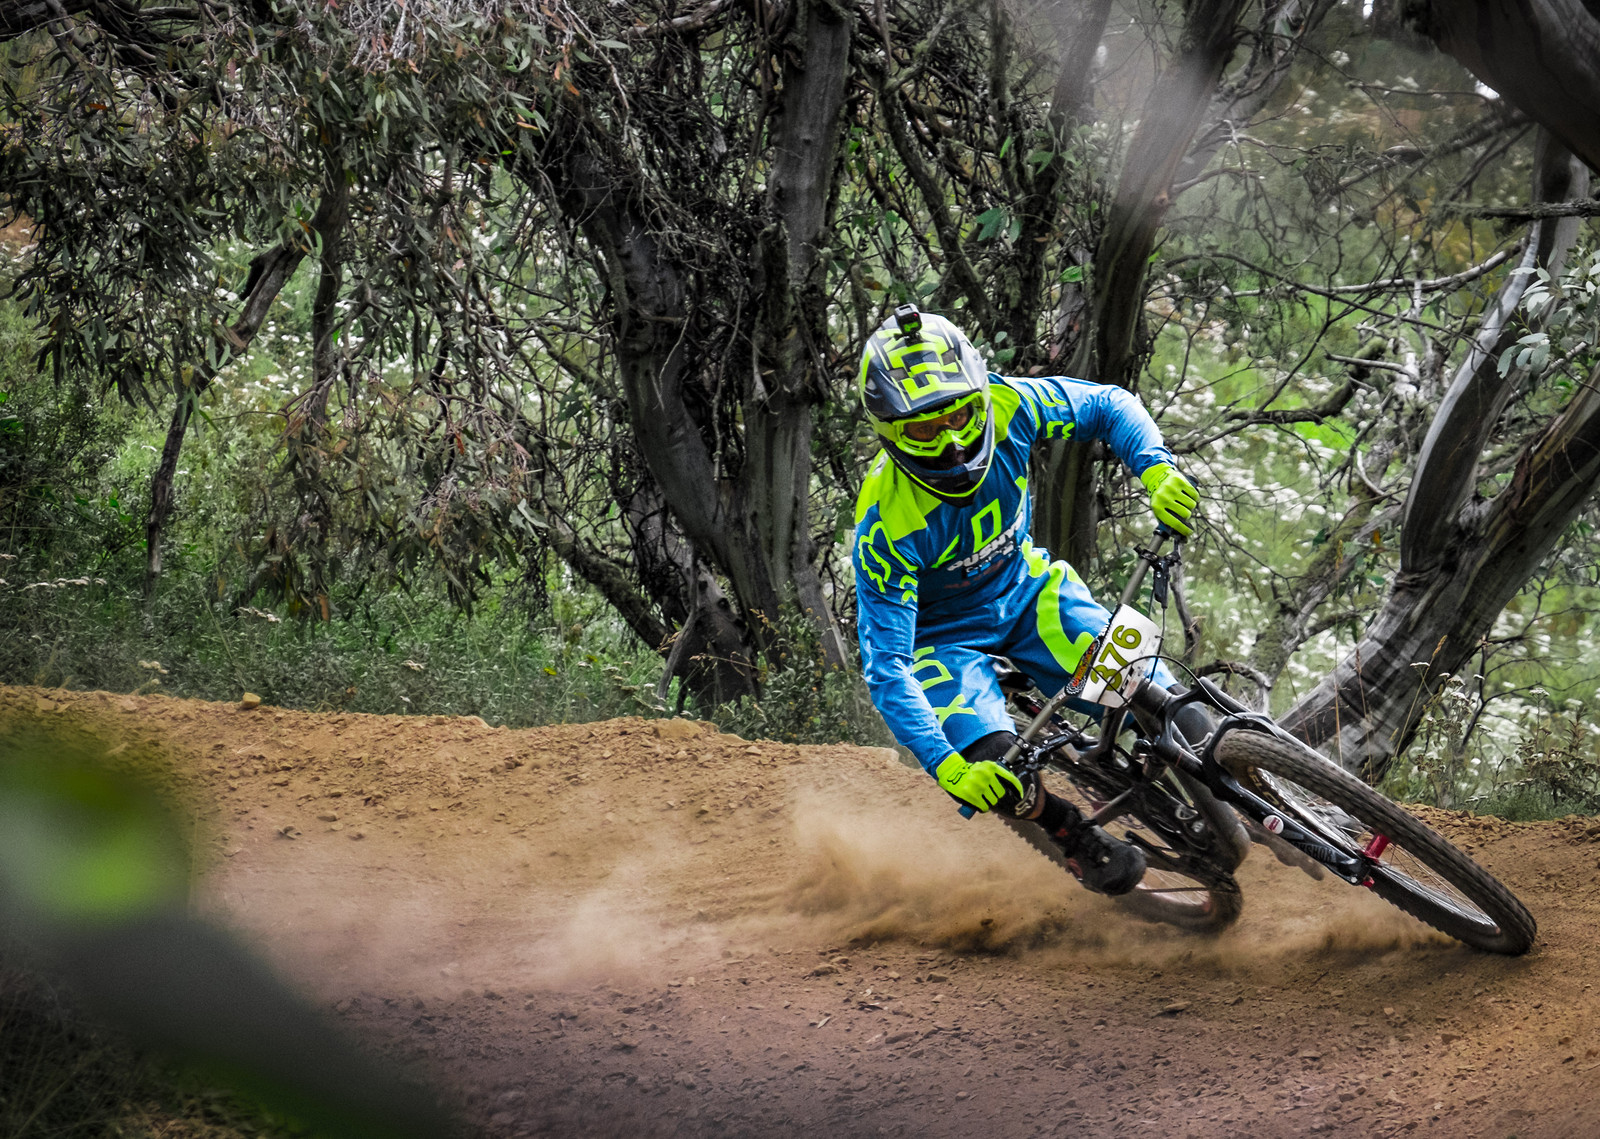 Searching for Traction - Howie286 - Mountain Biking Pictures - Vital MTB